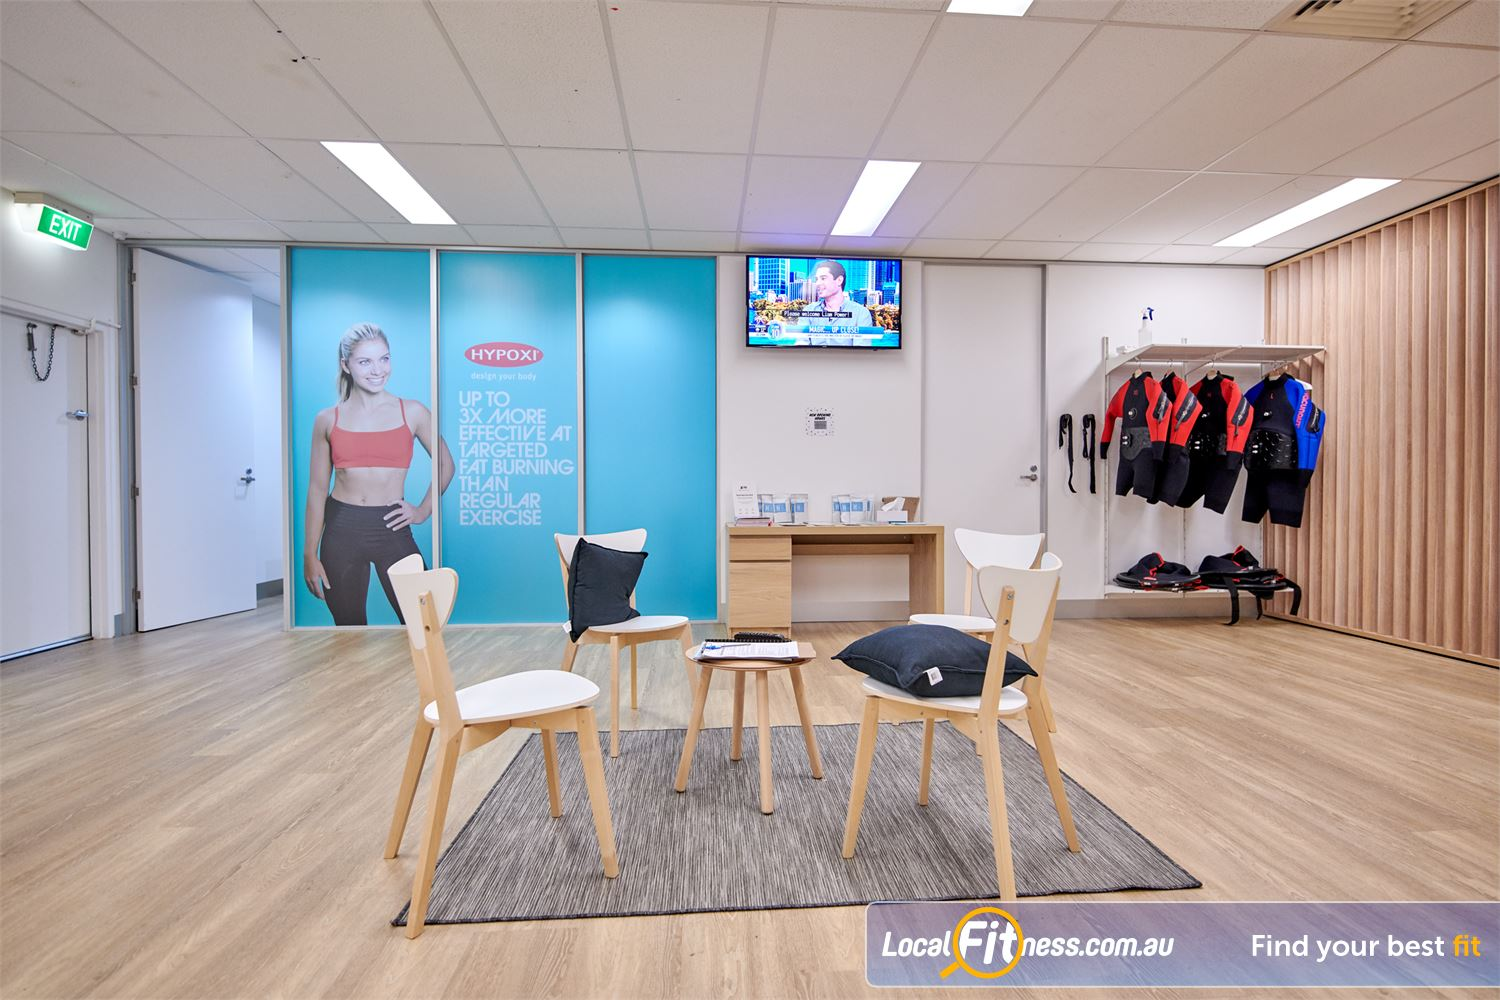 HYPOXI Weight Loss Camberwell Say goodbye to cellulite and stubborn fat at our Camberwell weight-loss studio.